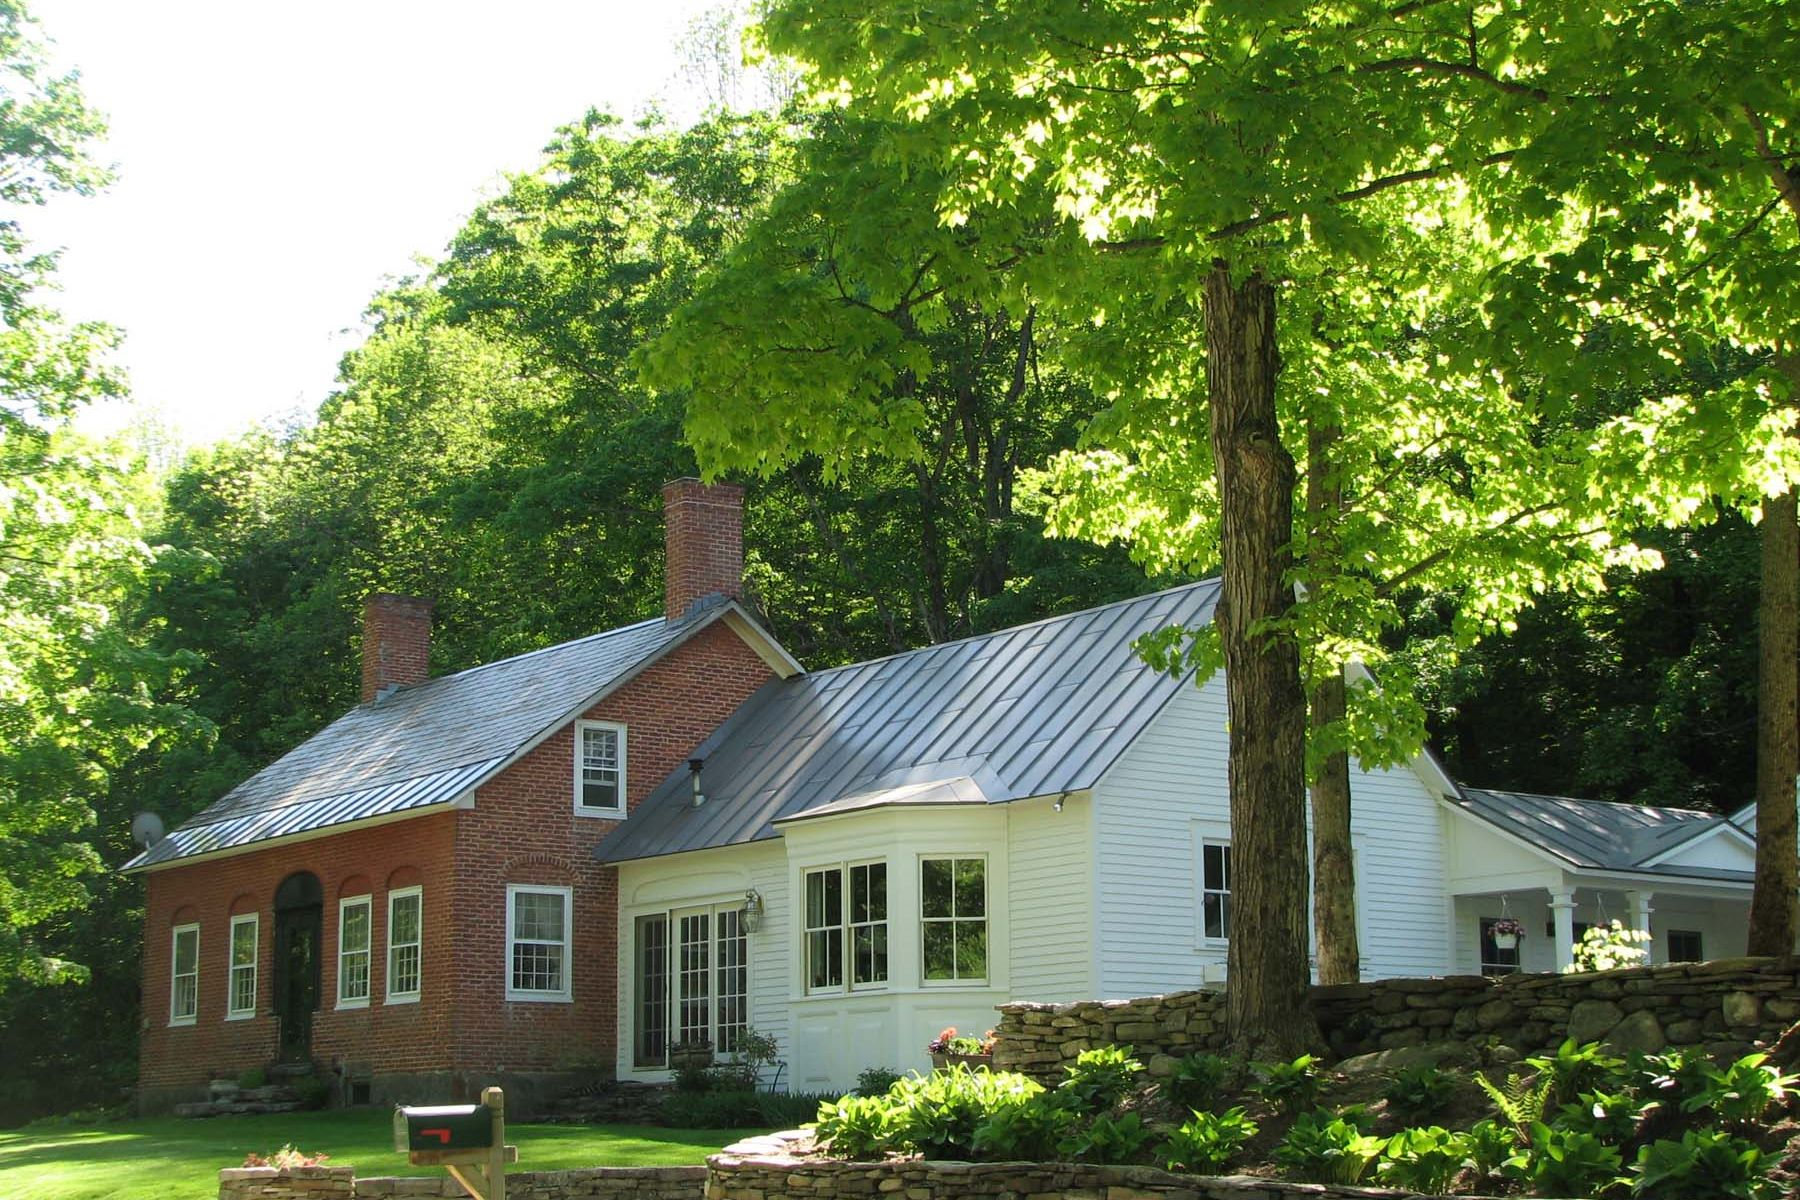 Single Family Homes for Sale at Antique Brick Federal on 100+ Acres 2092 Cavendish Gulf Road Cavendish, Vermont 05142 United States